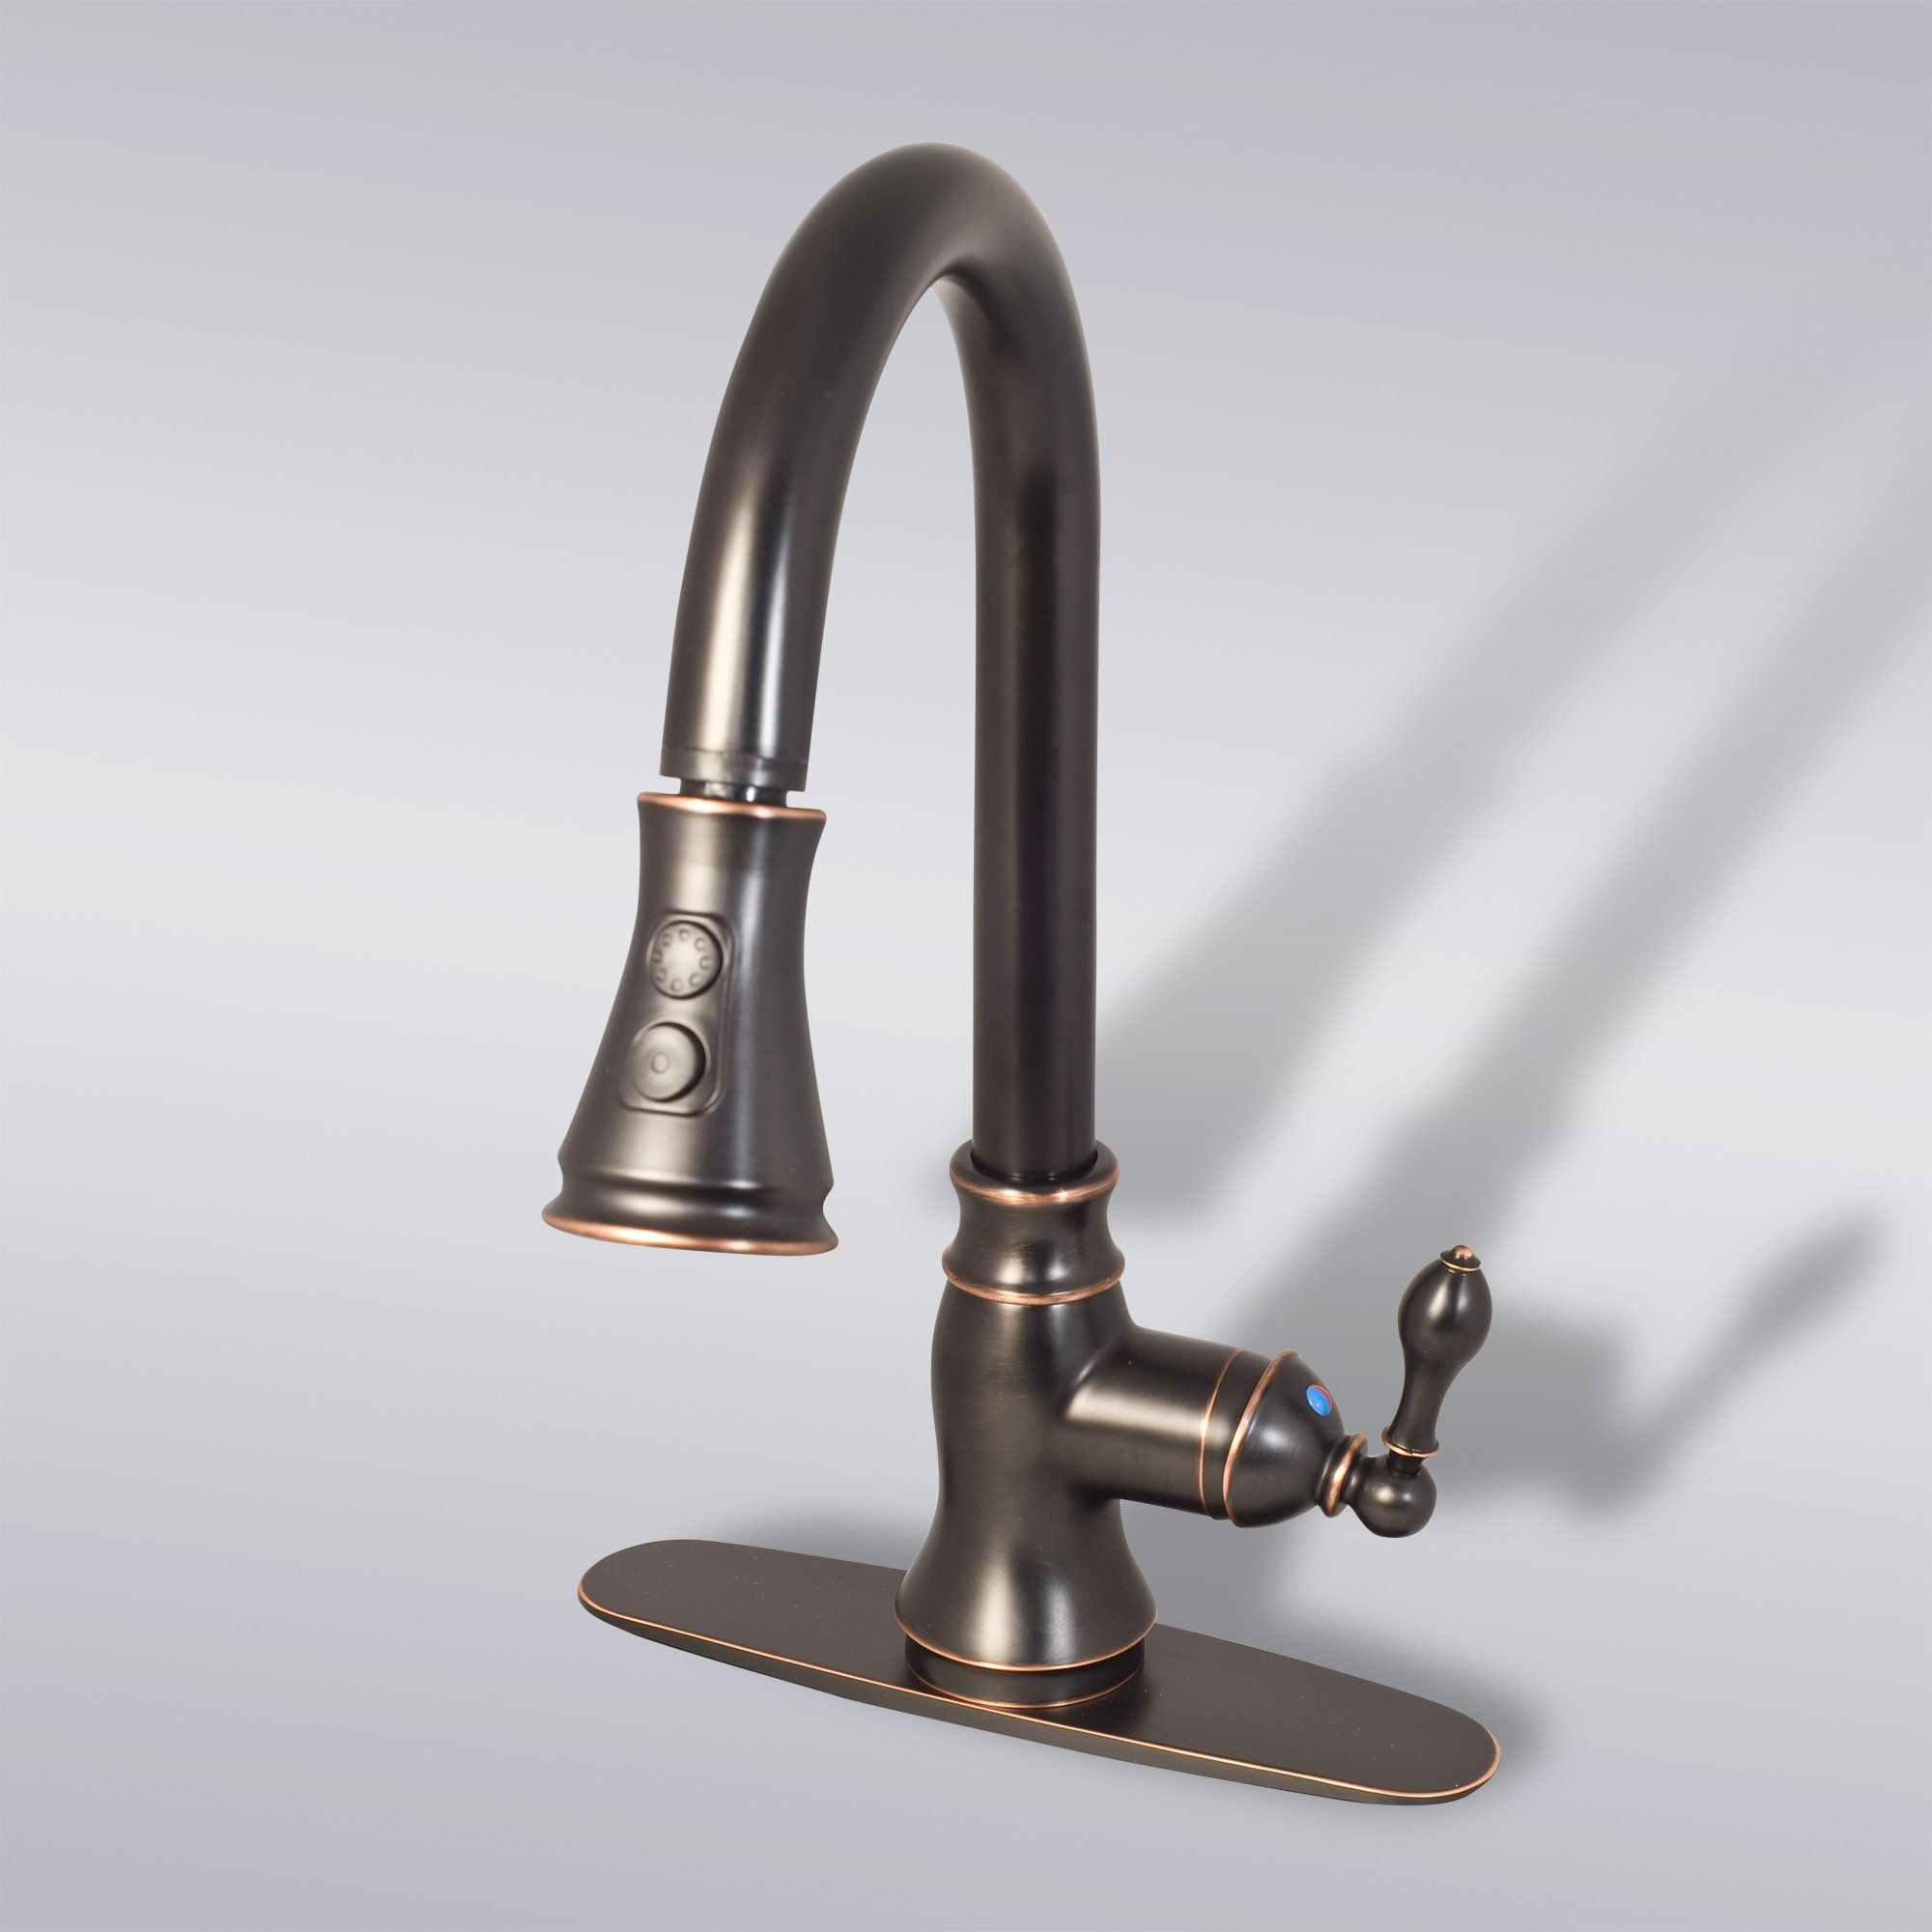 us bronze kitchen fresh faucet oil sink of black rubbed remove posite with kohler drain padlords granite